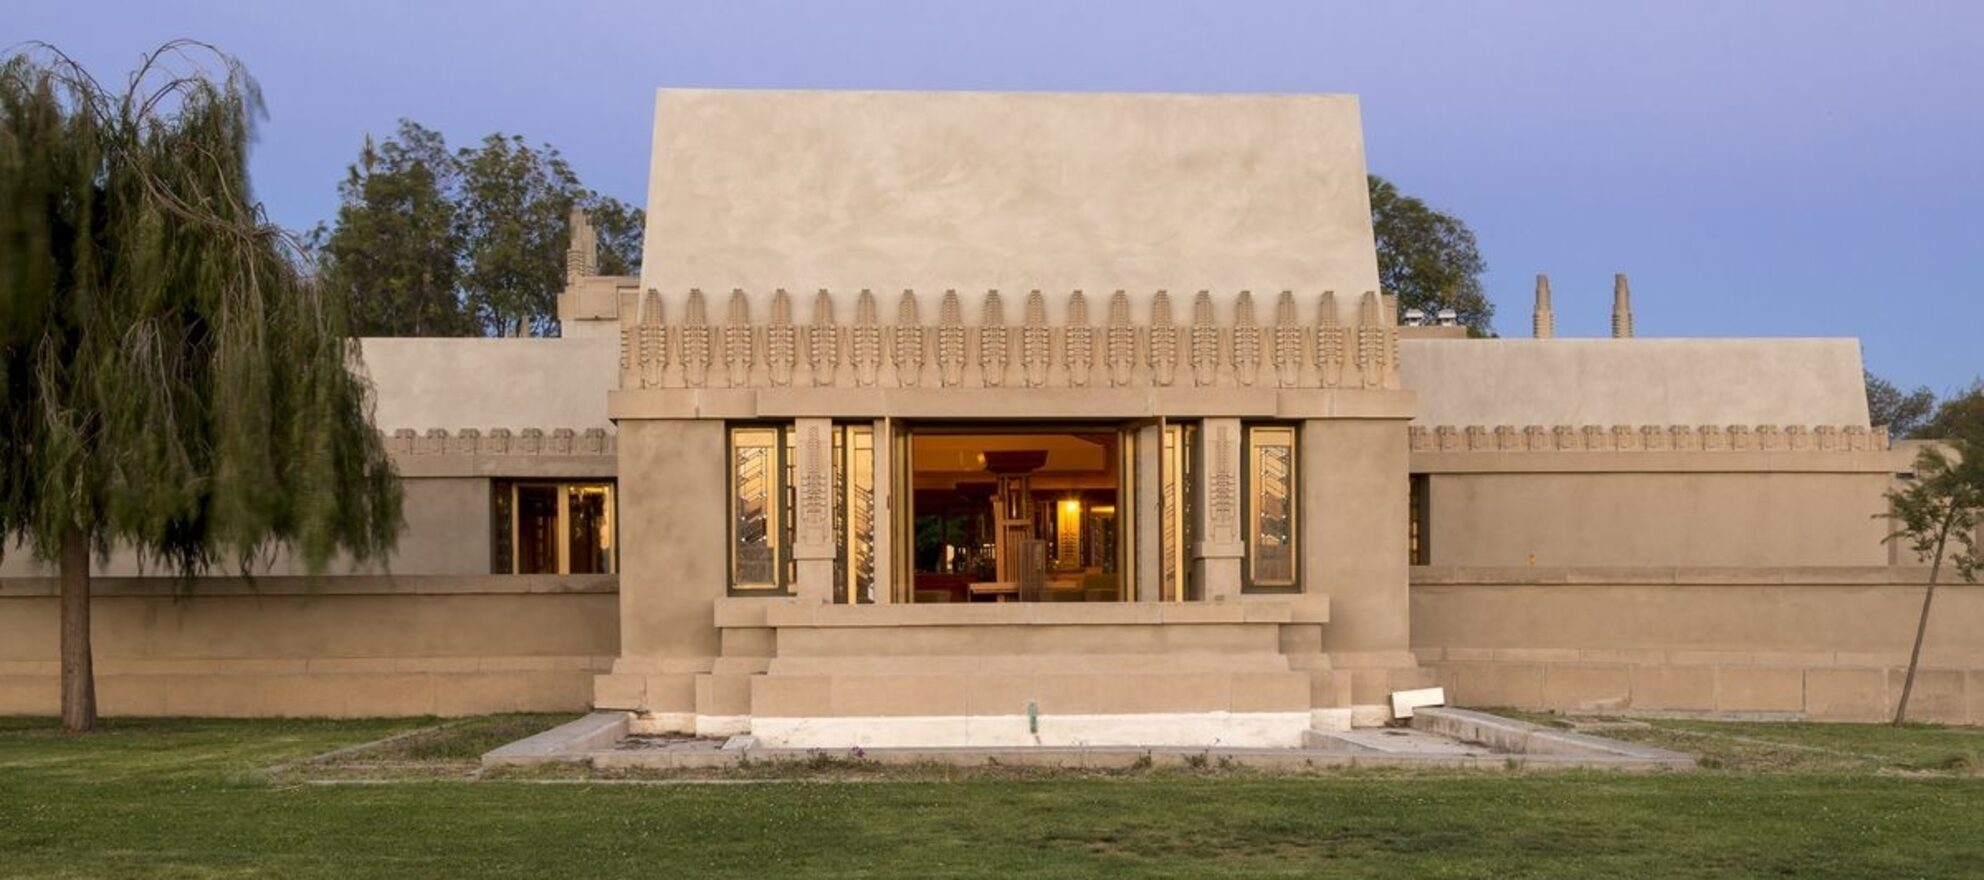 Frank Lloyd Wright buildings named as World Heritage sites